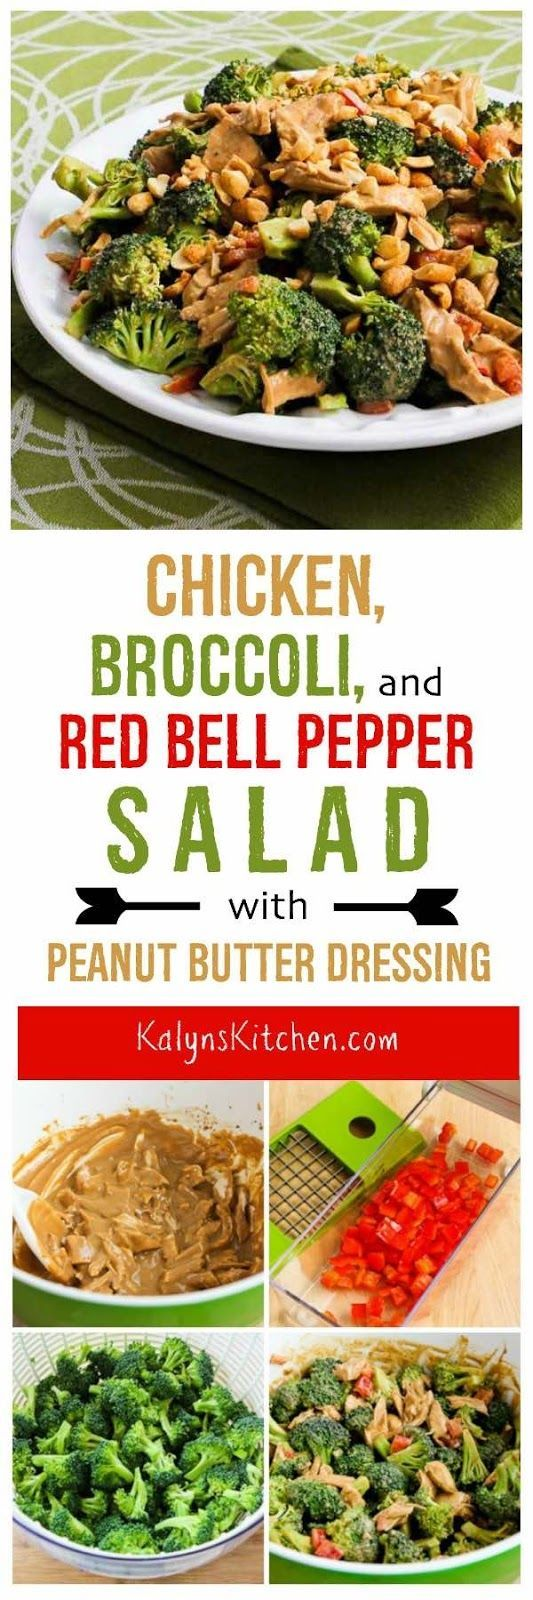 Bell pepper salad, Red bell peppers and Chicken broccoli on Pinterest